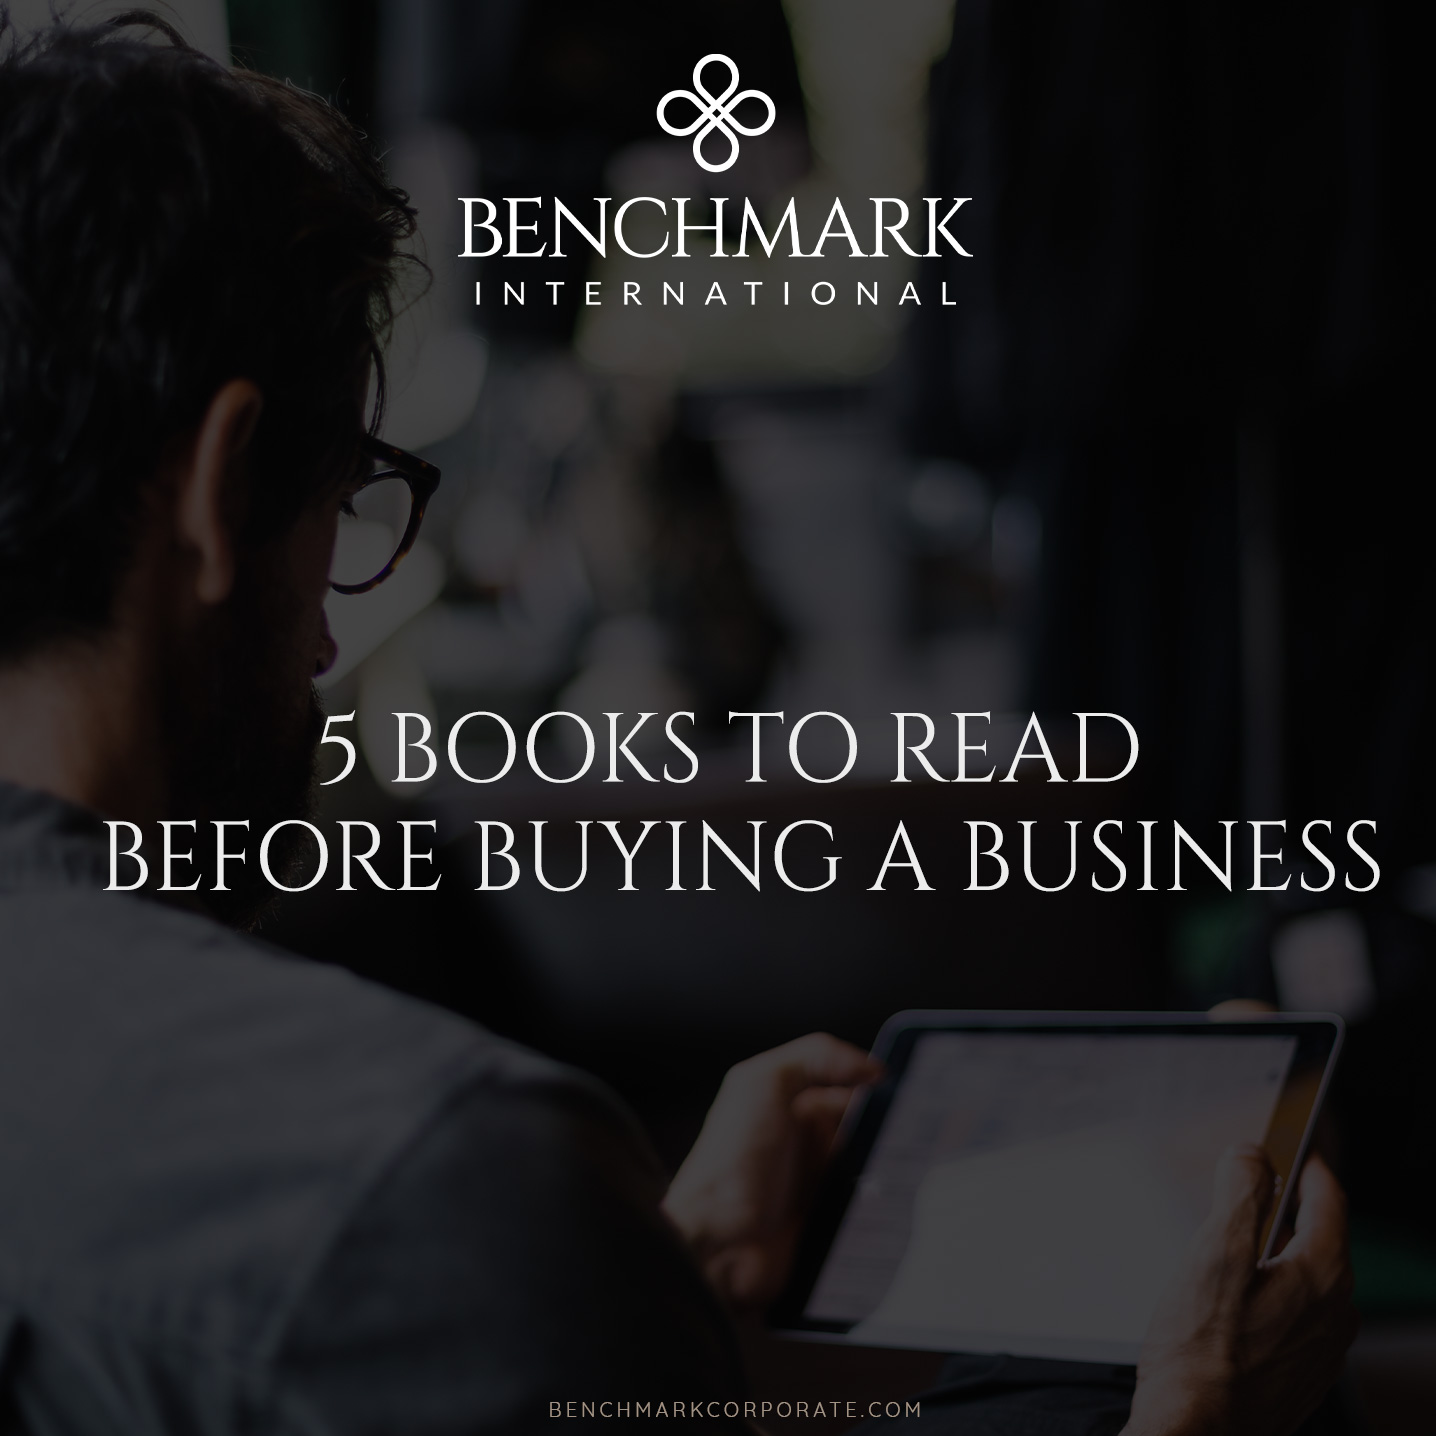 5-Books-to-Read-Before-Buying-Social-2019